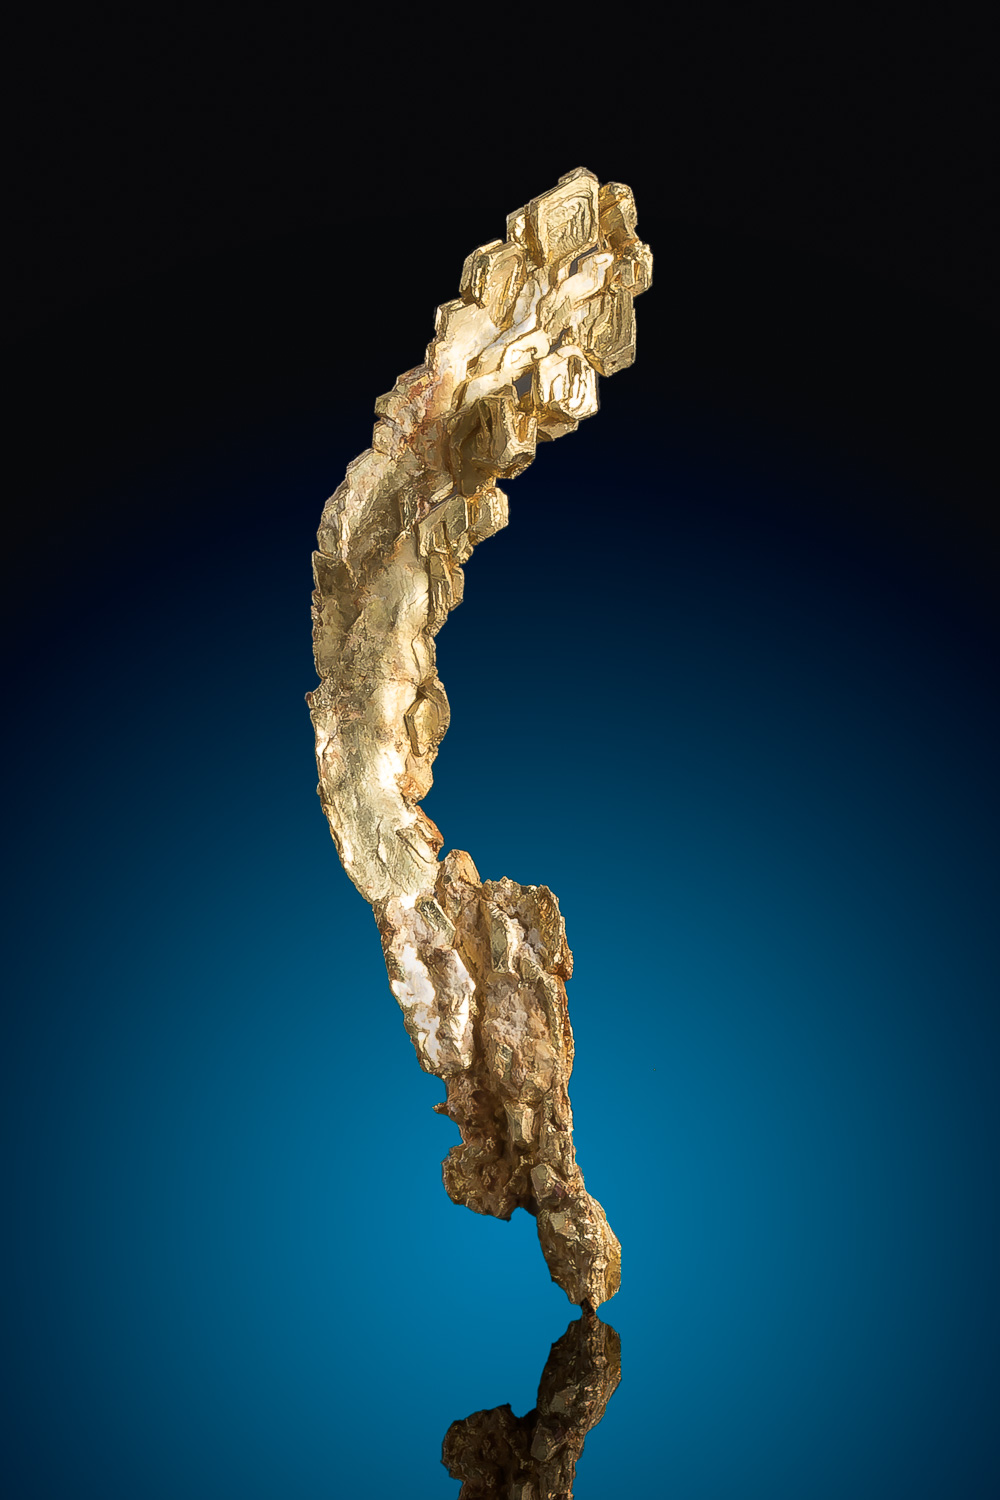 Magnificent Hoppered Trigon Crystals - Elongated Gold Crystal